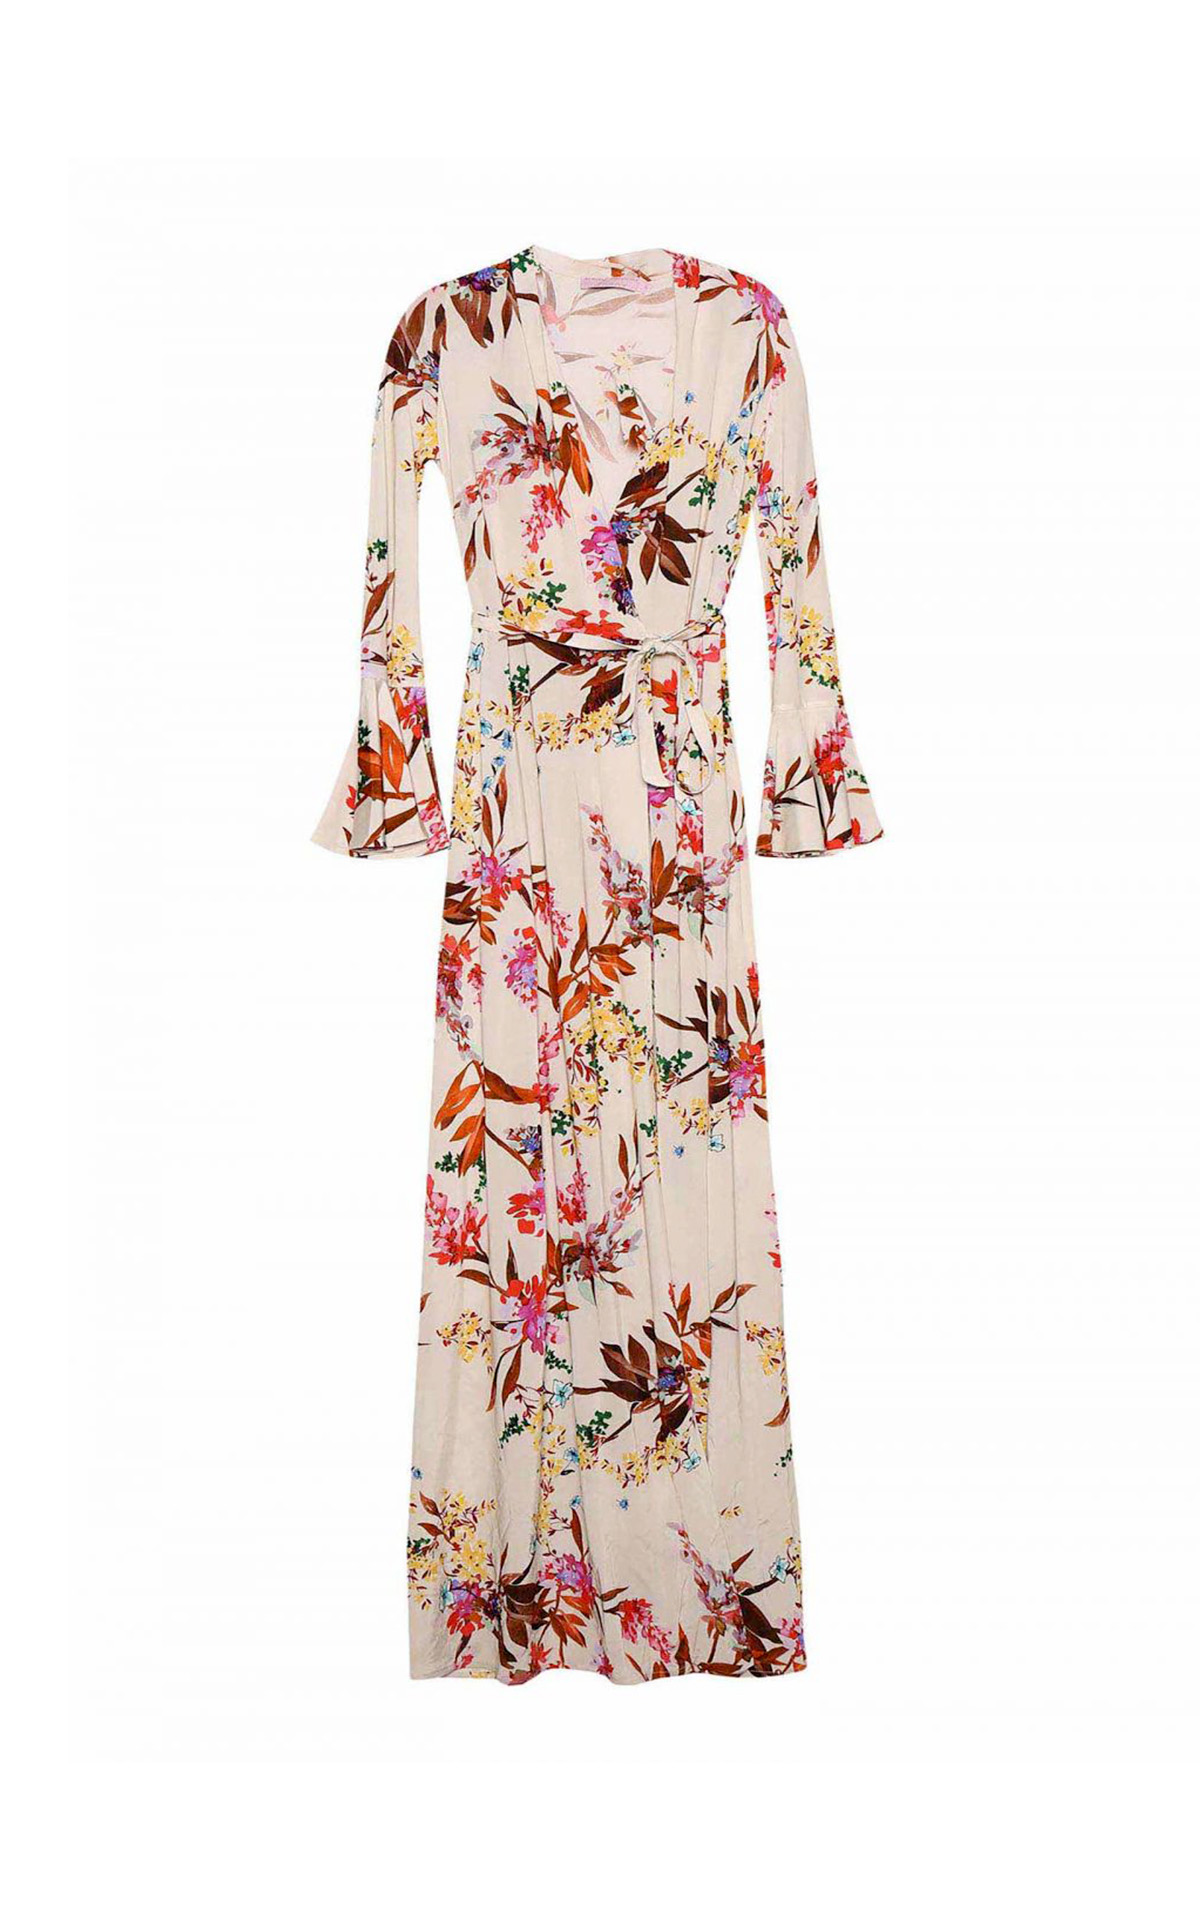 Beige flowered dress Dolores Promesas